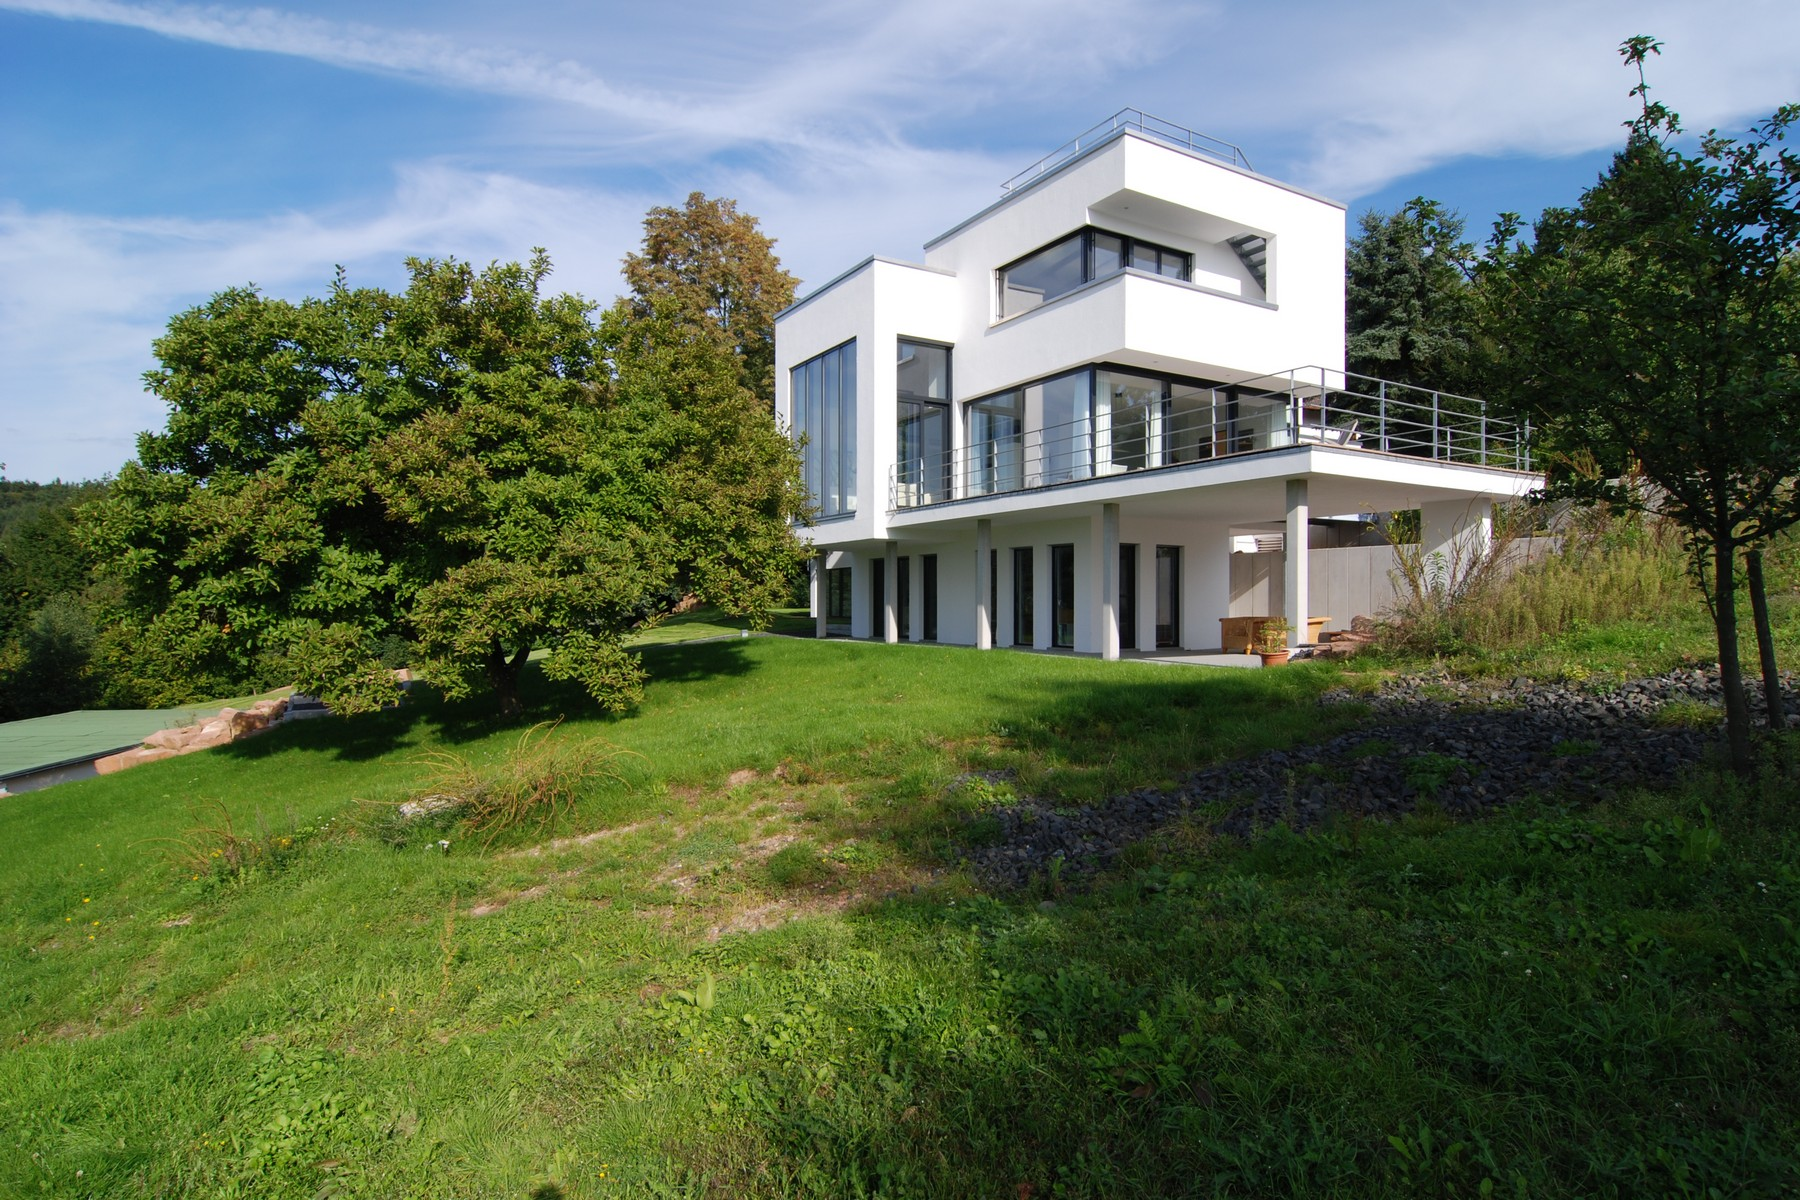 Single Family Home for Sale at Architectural Masterpiece - Only Forty Minutes From Frankfurt Center Frankfurt, Hessen, 60323 Germany